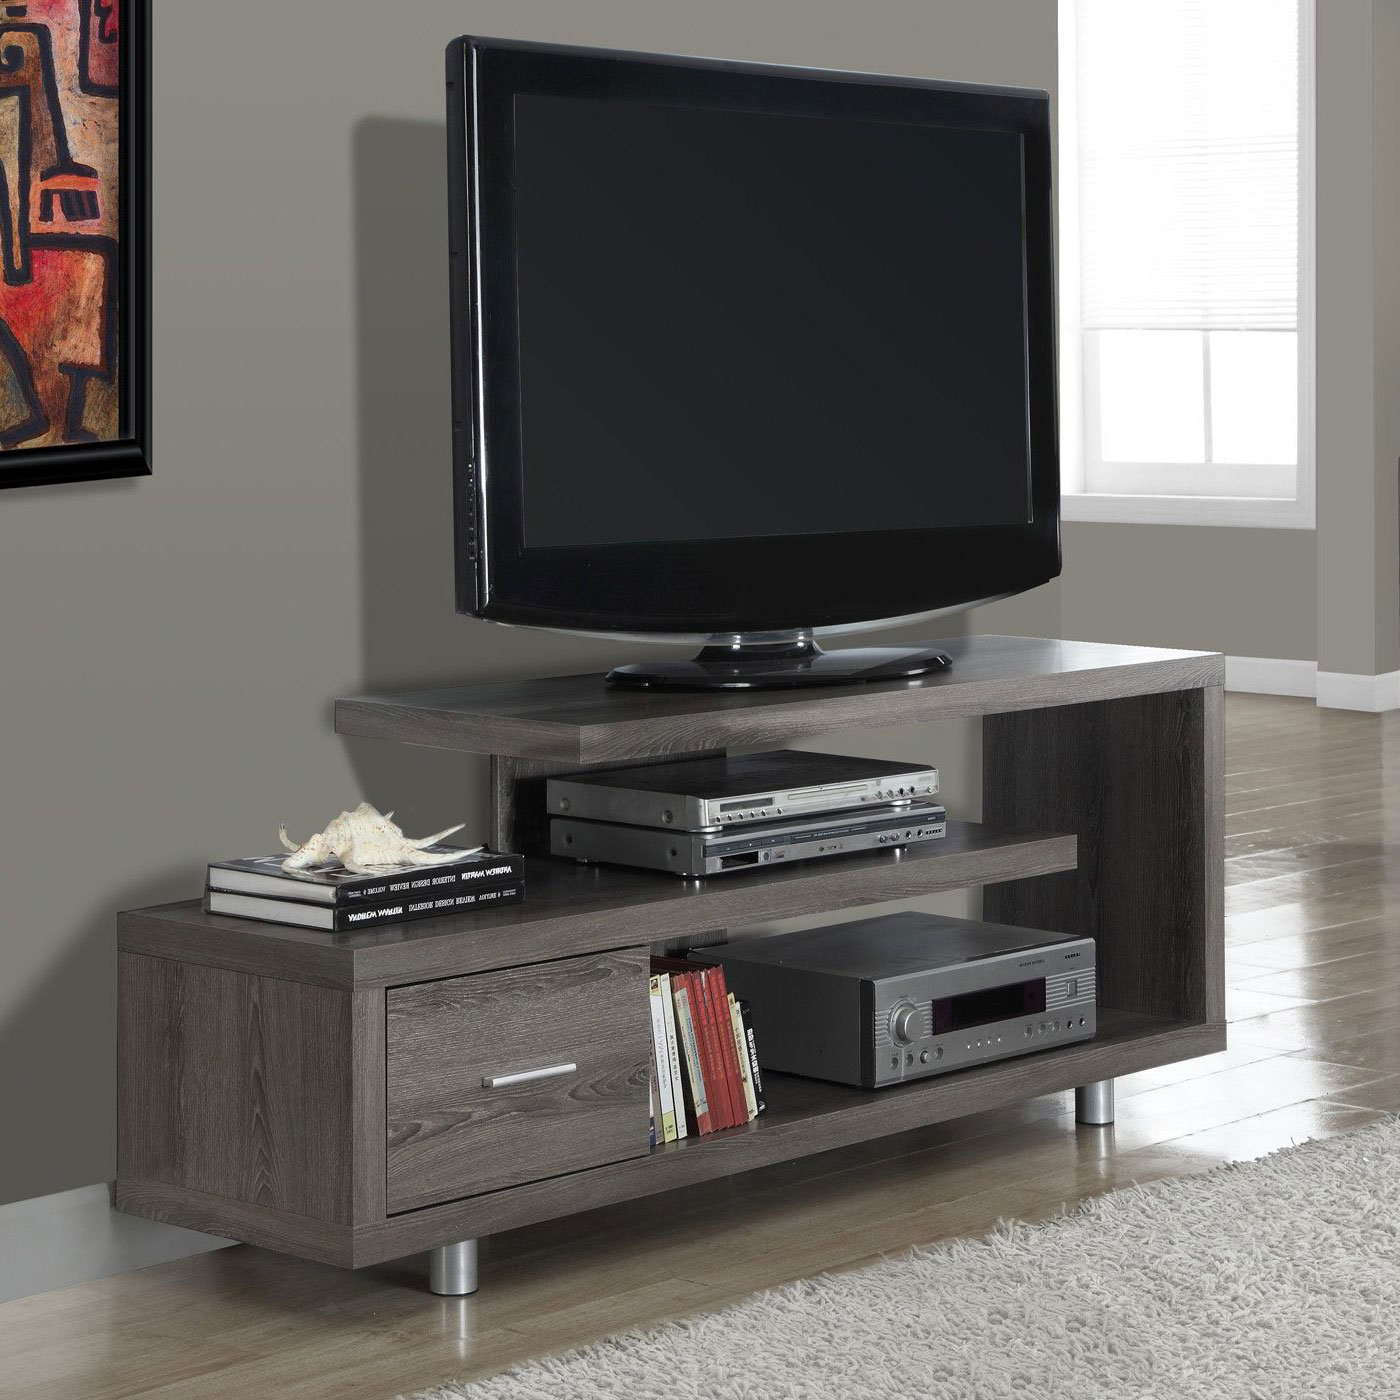 "Maddy 60 Inch Tv Stands For Recent Monarch Tv Stand White With 1 Drawer For Tvs Up To 47""l – Walmart (Gallery 12 of 20)"